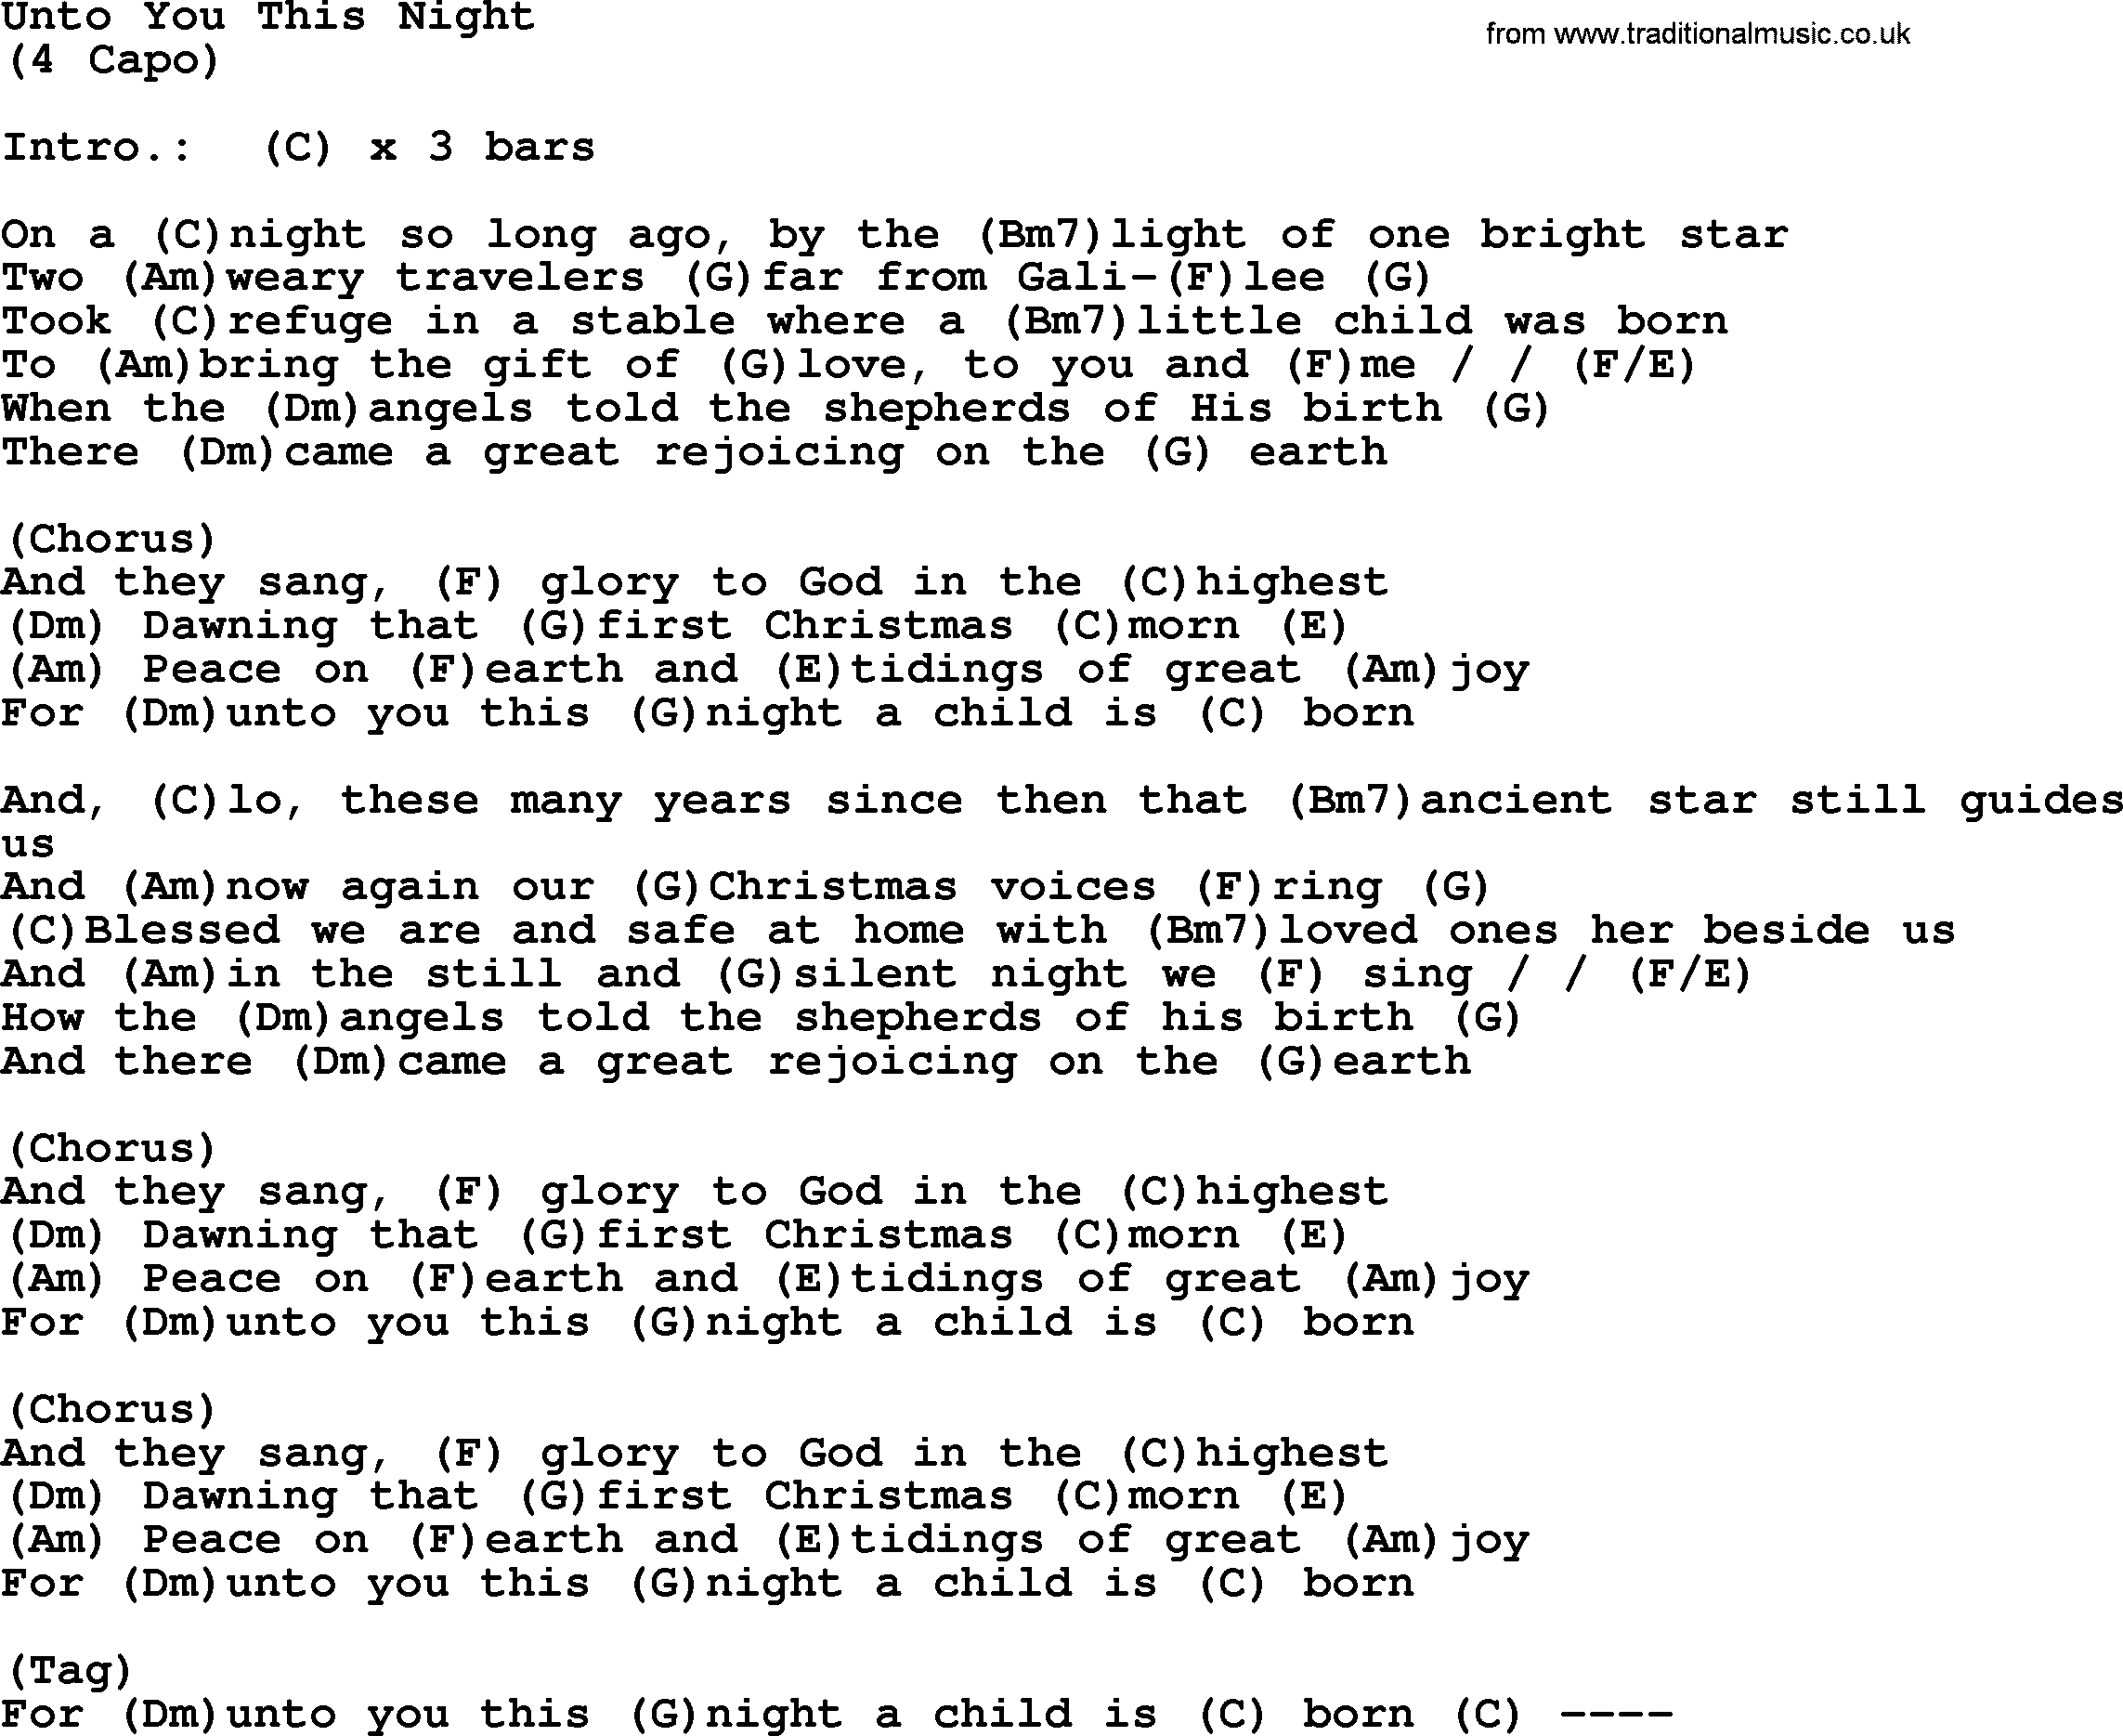 Unto You This Night, by Garth Brooks - lyrics and chords